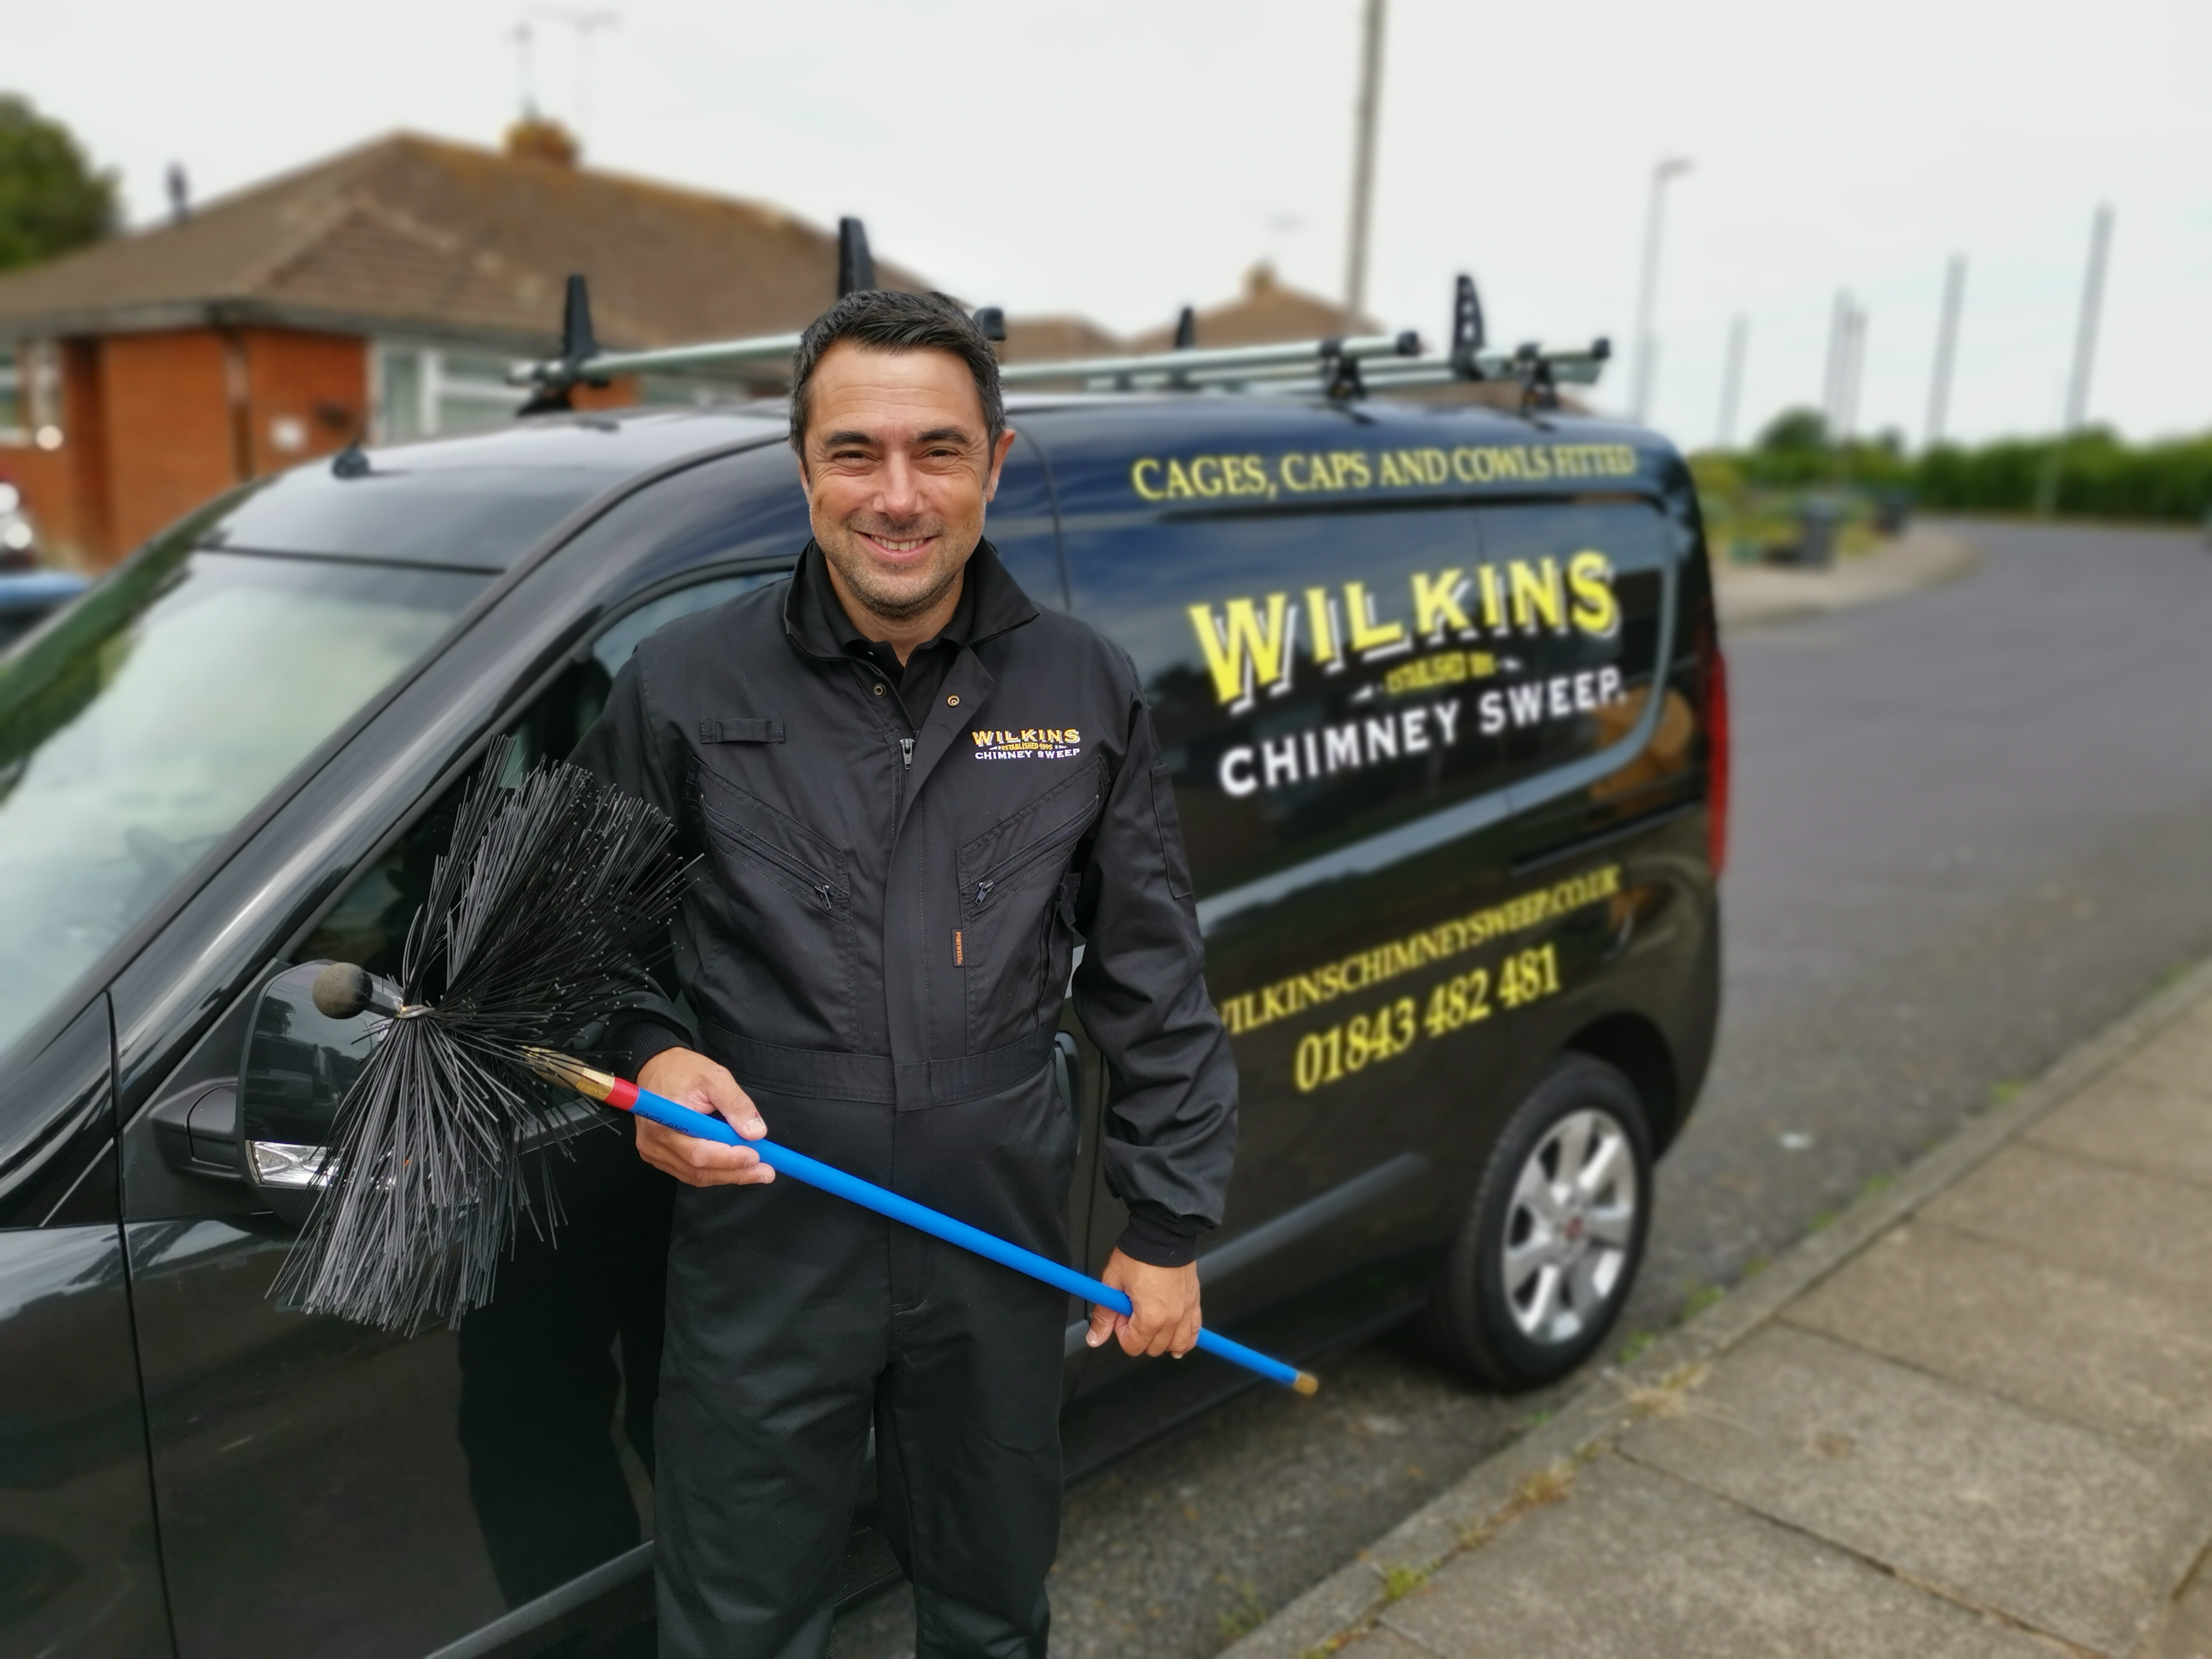 Wilkins Chimney Sweep welcomes new franchisee during COVID